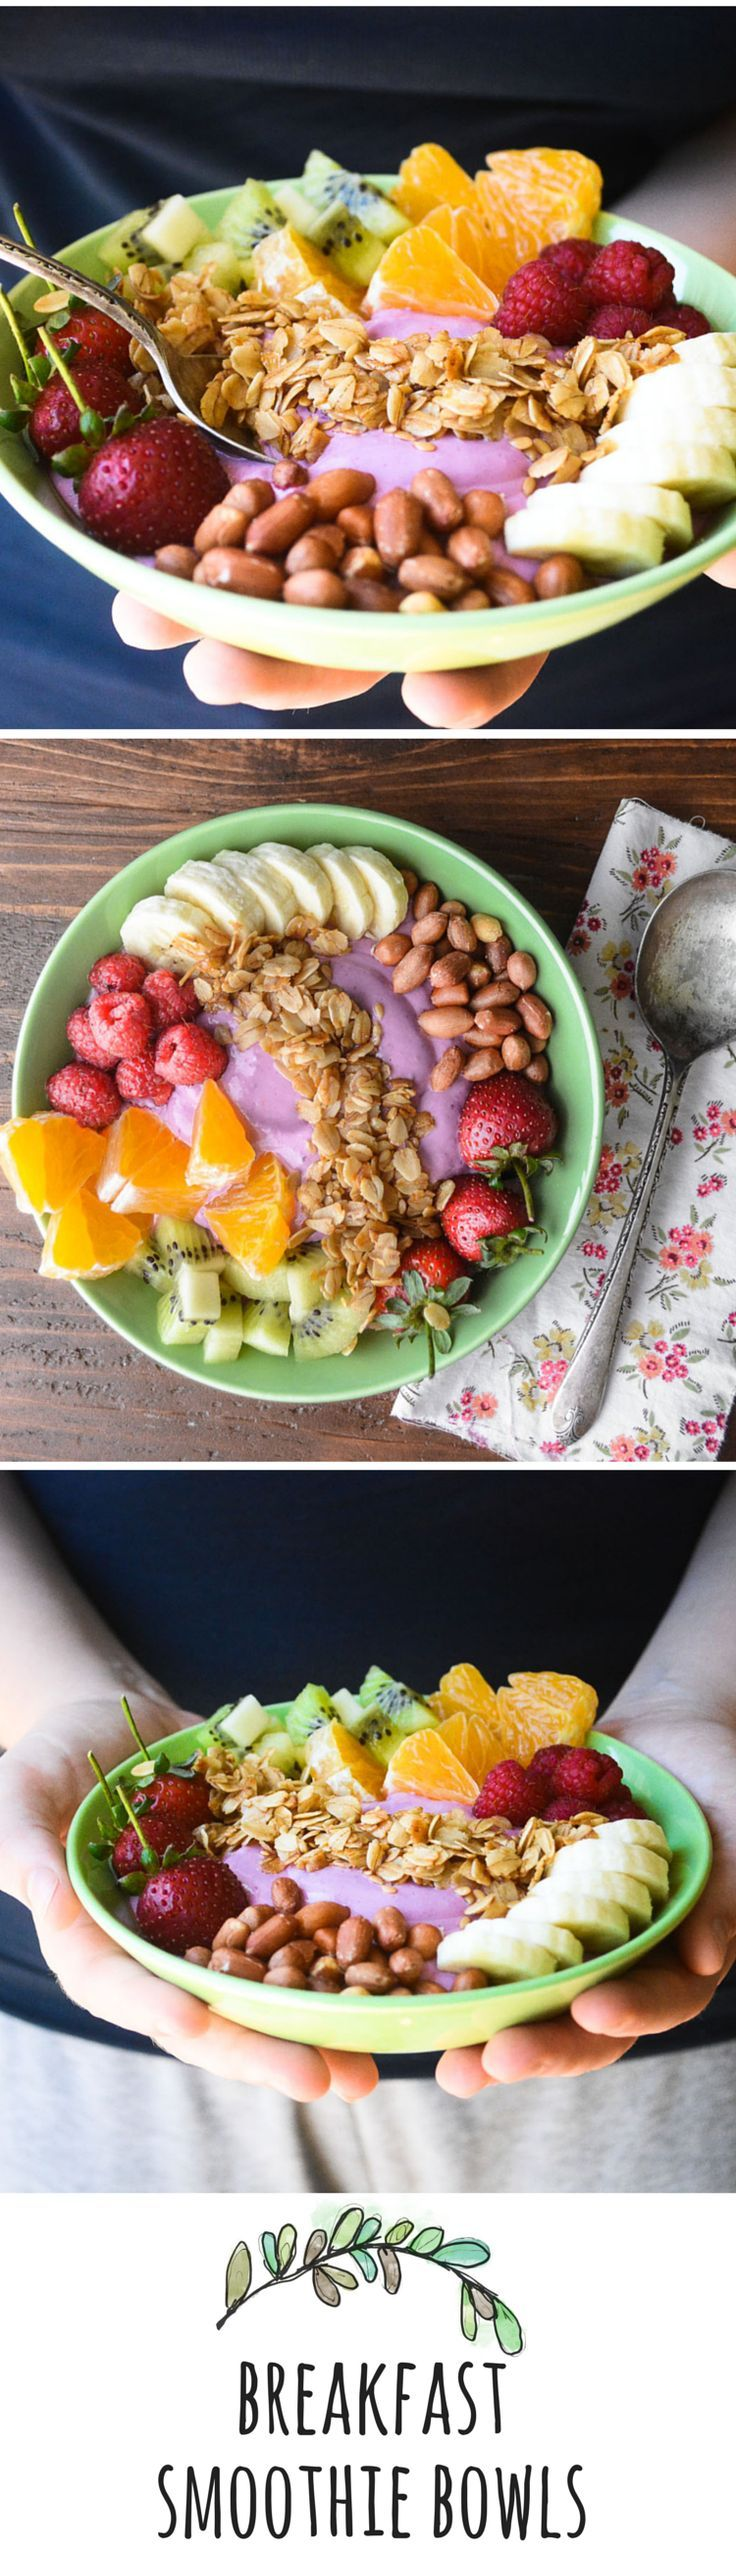 Breakfast Smoothie Bowls - You don't have to 'drink' your breakfast anymore to get the healthy benefits of a smoothie! #healthy #breakfast #smoothiebowl